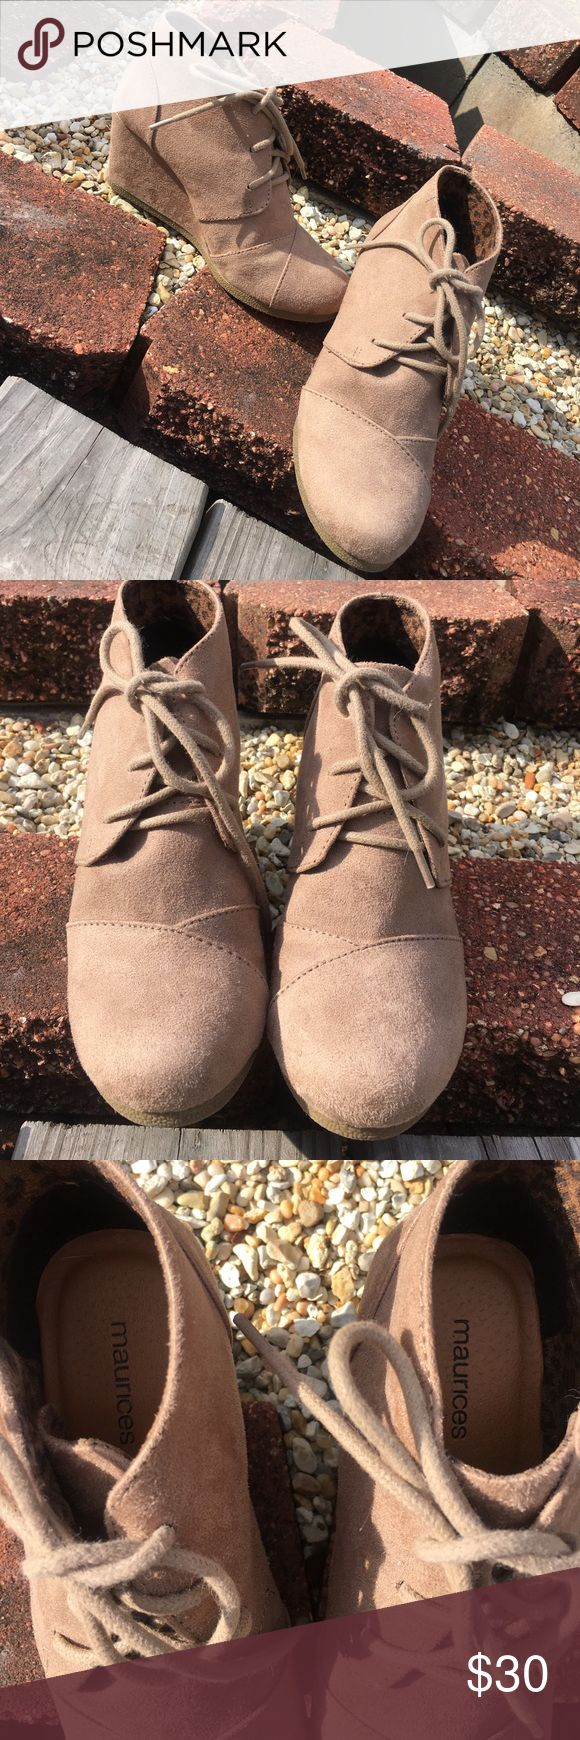 Maurice's Ankle Booties Tan and will match with just about everything. No flaws at all. Worn maybe twice. Little to no wear at the bottom. Very stylish for fall and winter events. Maurices Shoes Ankle Boots & Booties